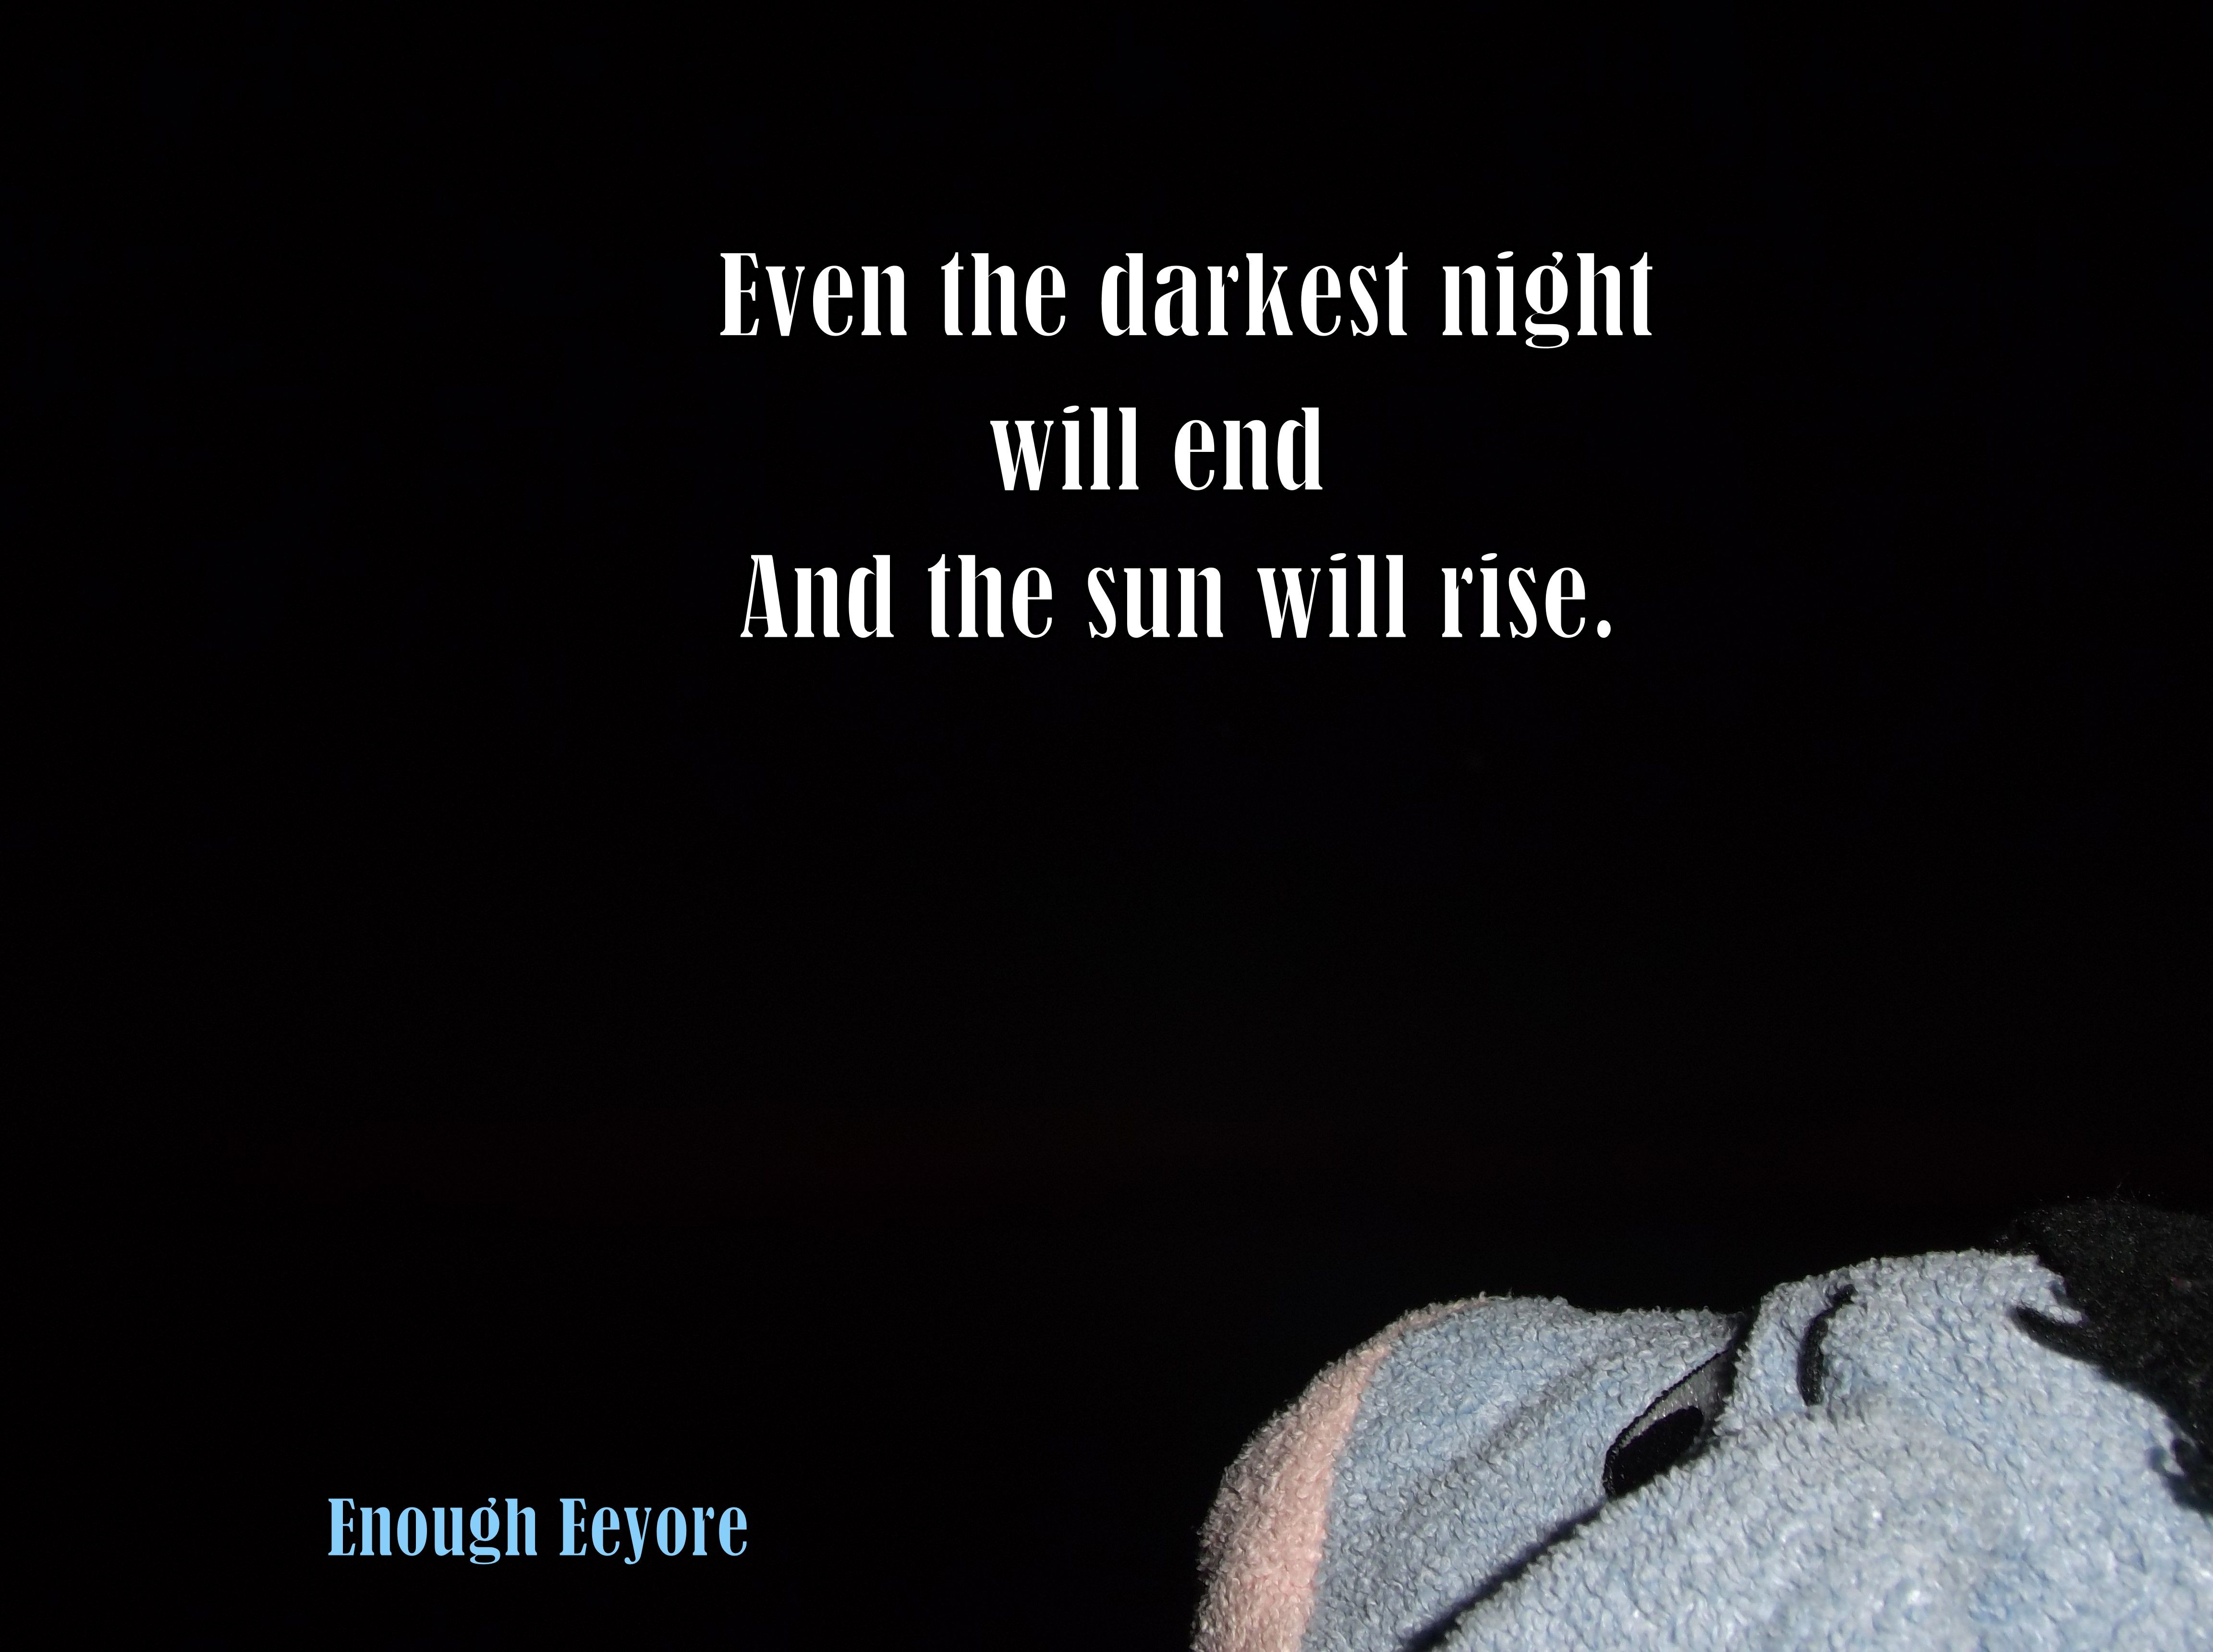 Quotes Inspirations Even The Darkest Night Will End Dark Night Funny Quotes Inspirational Quotes